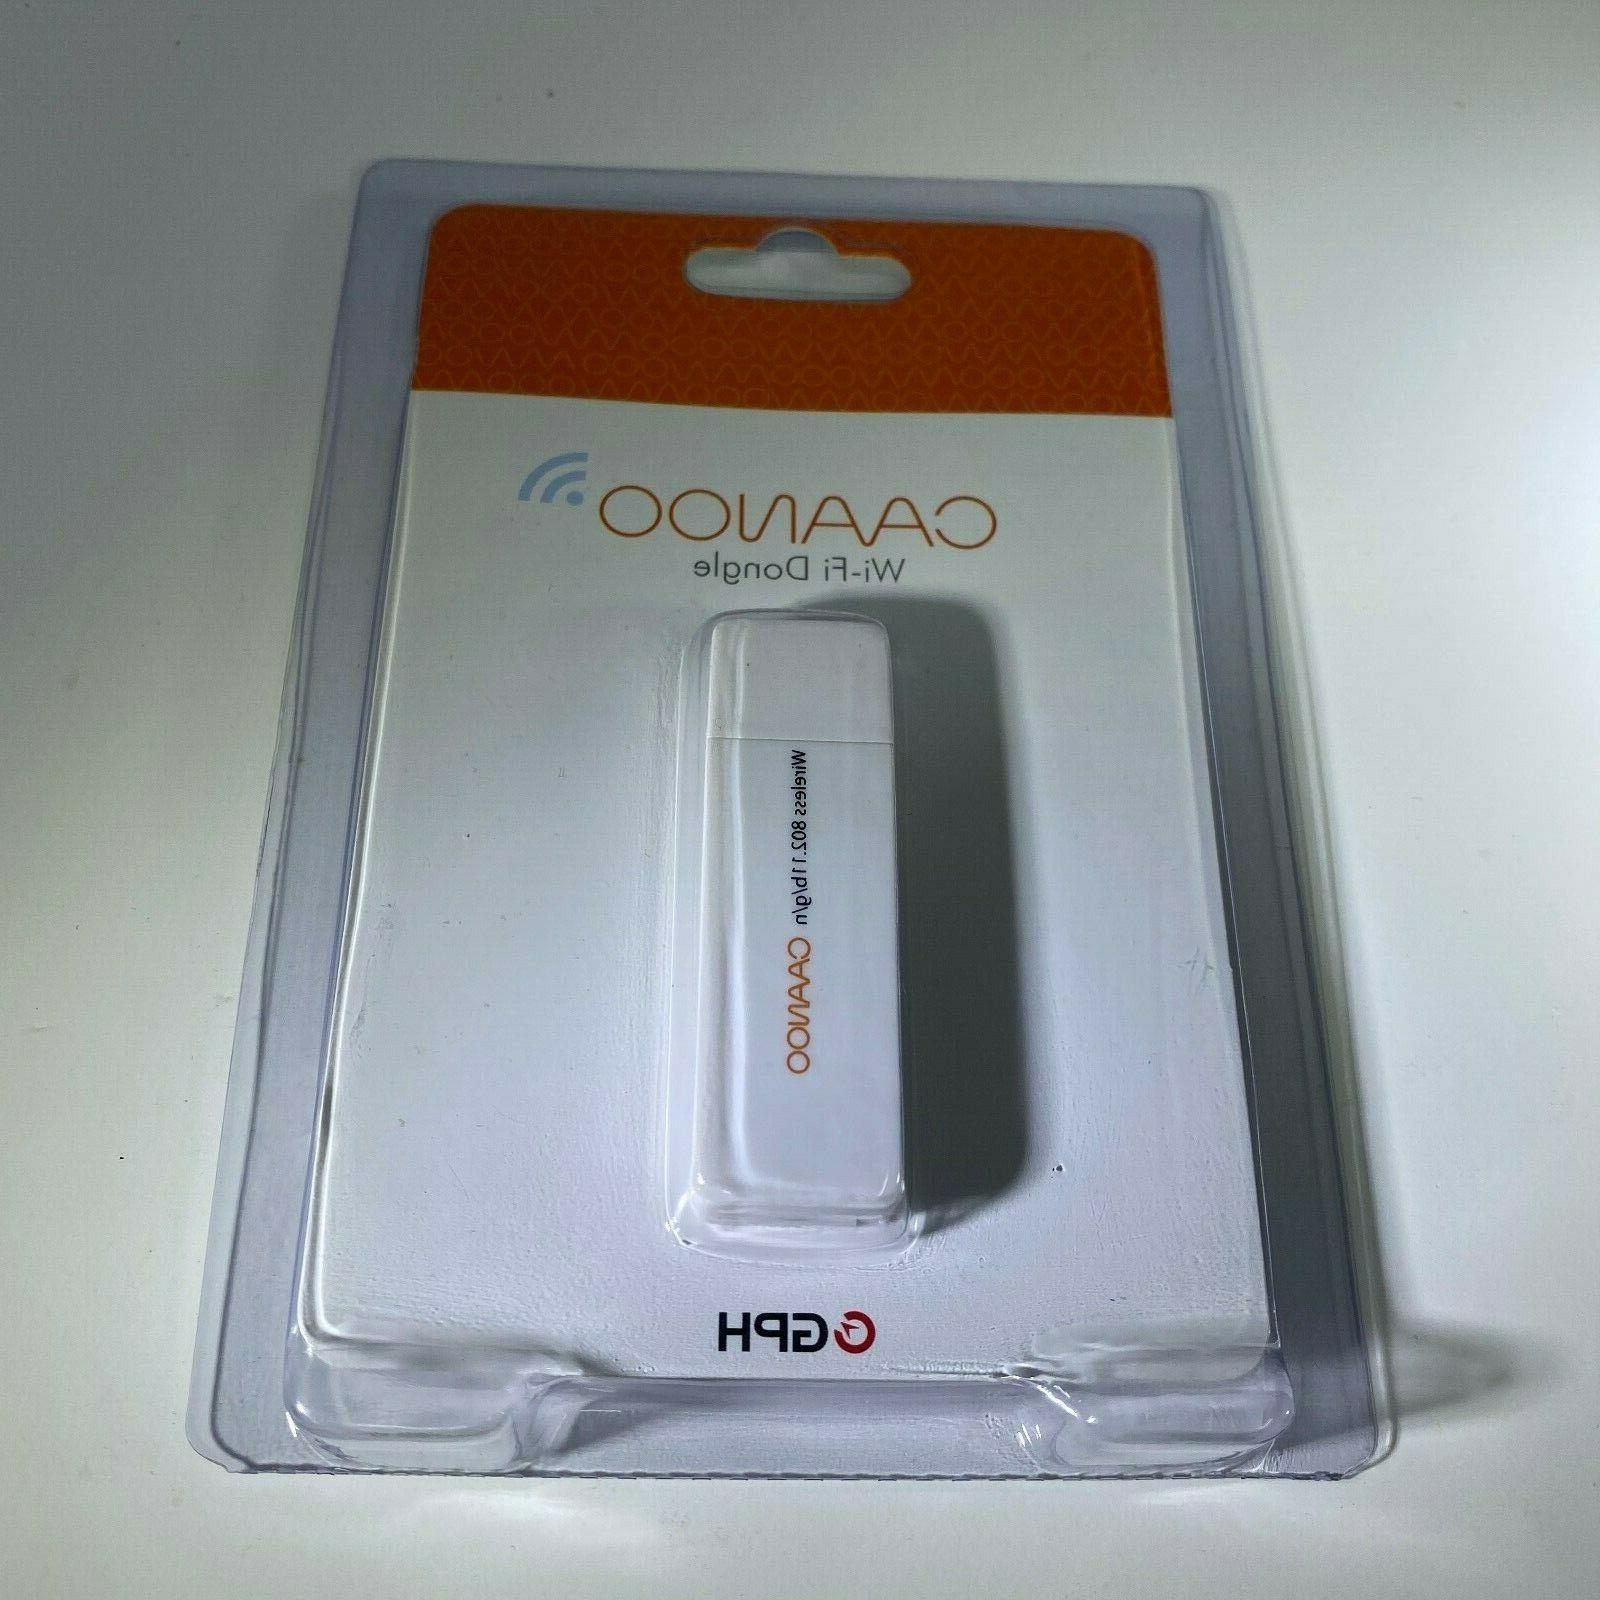 gph caanoo official wifi dongle white brand